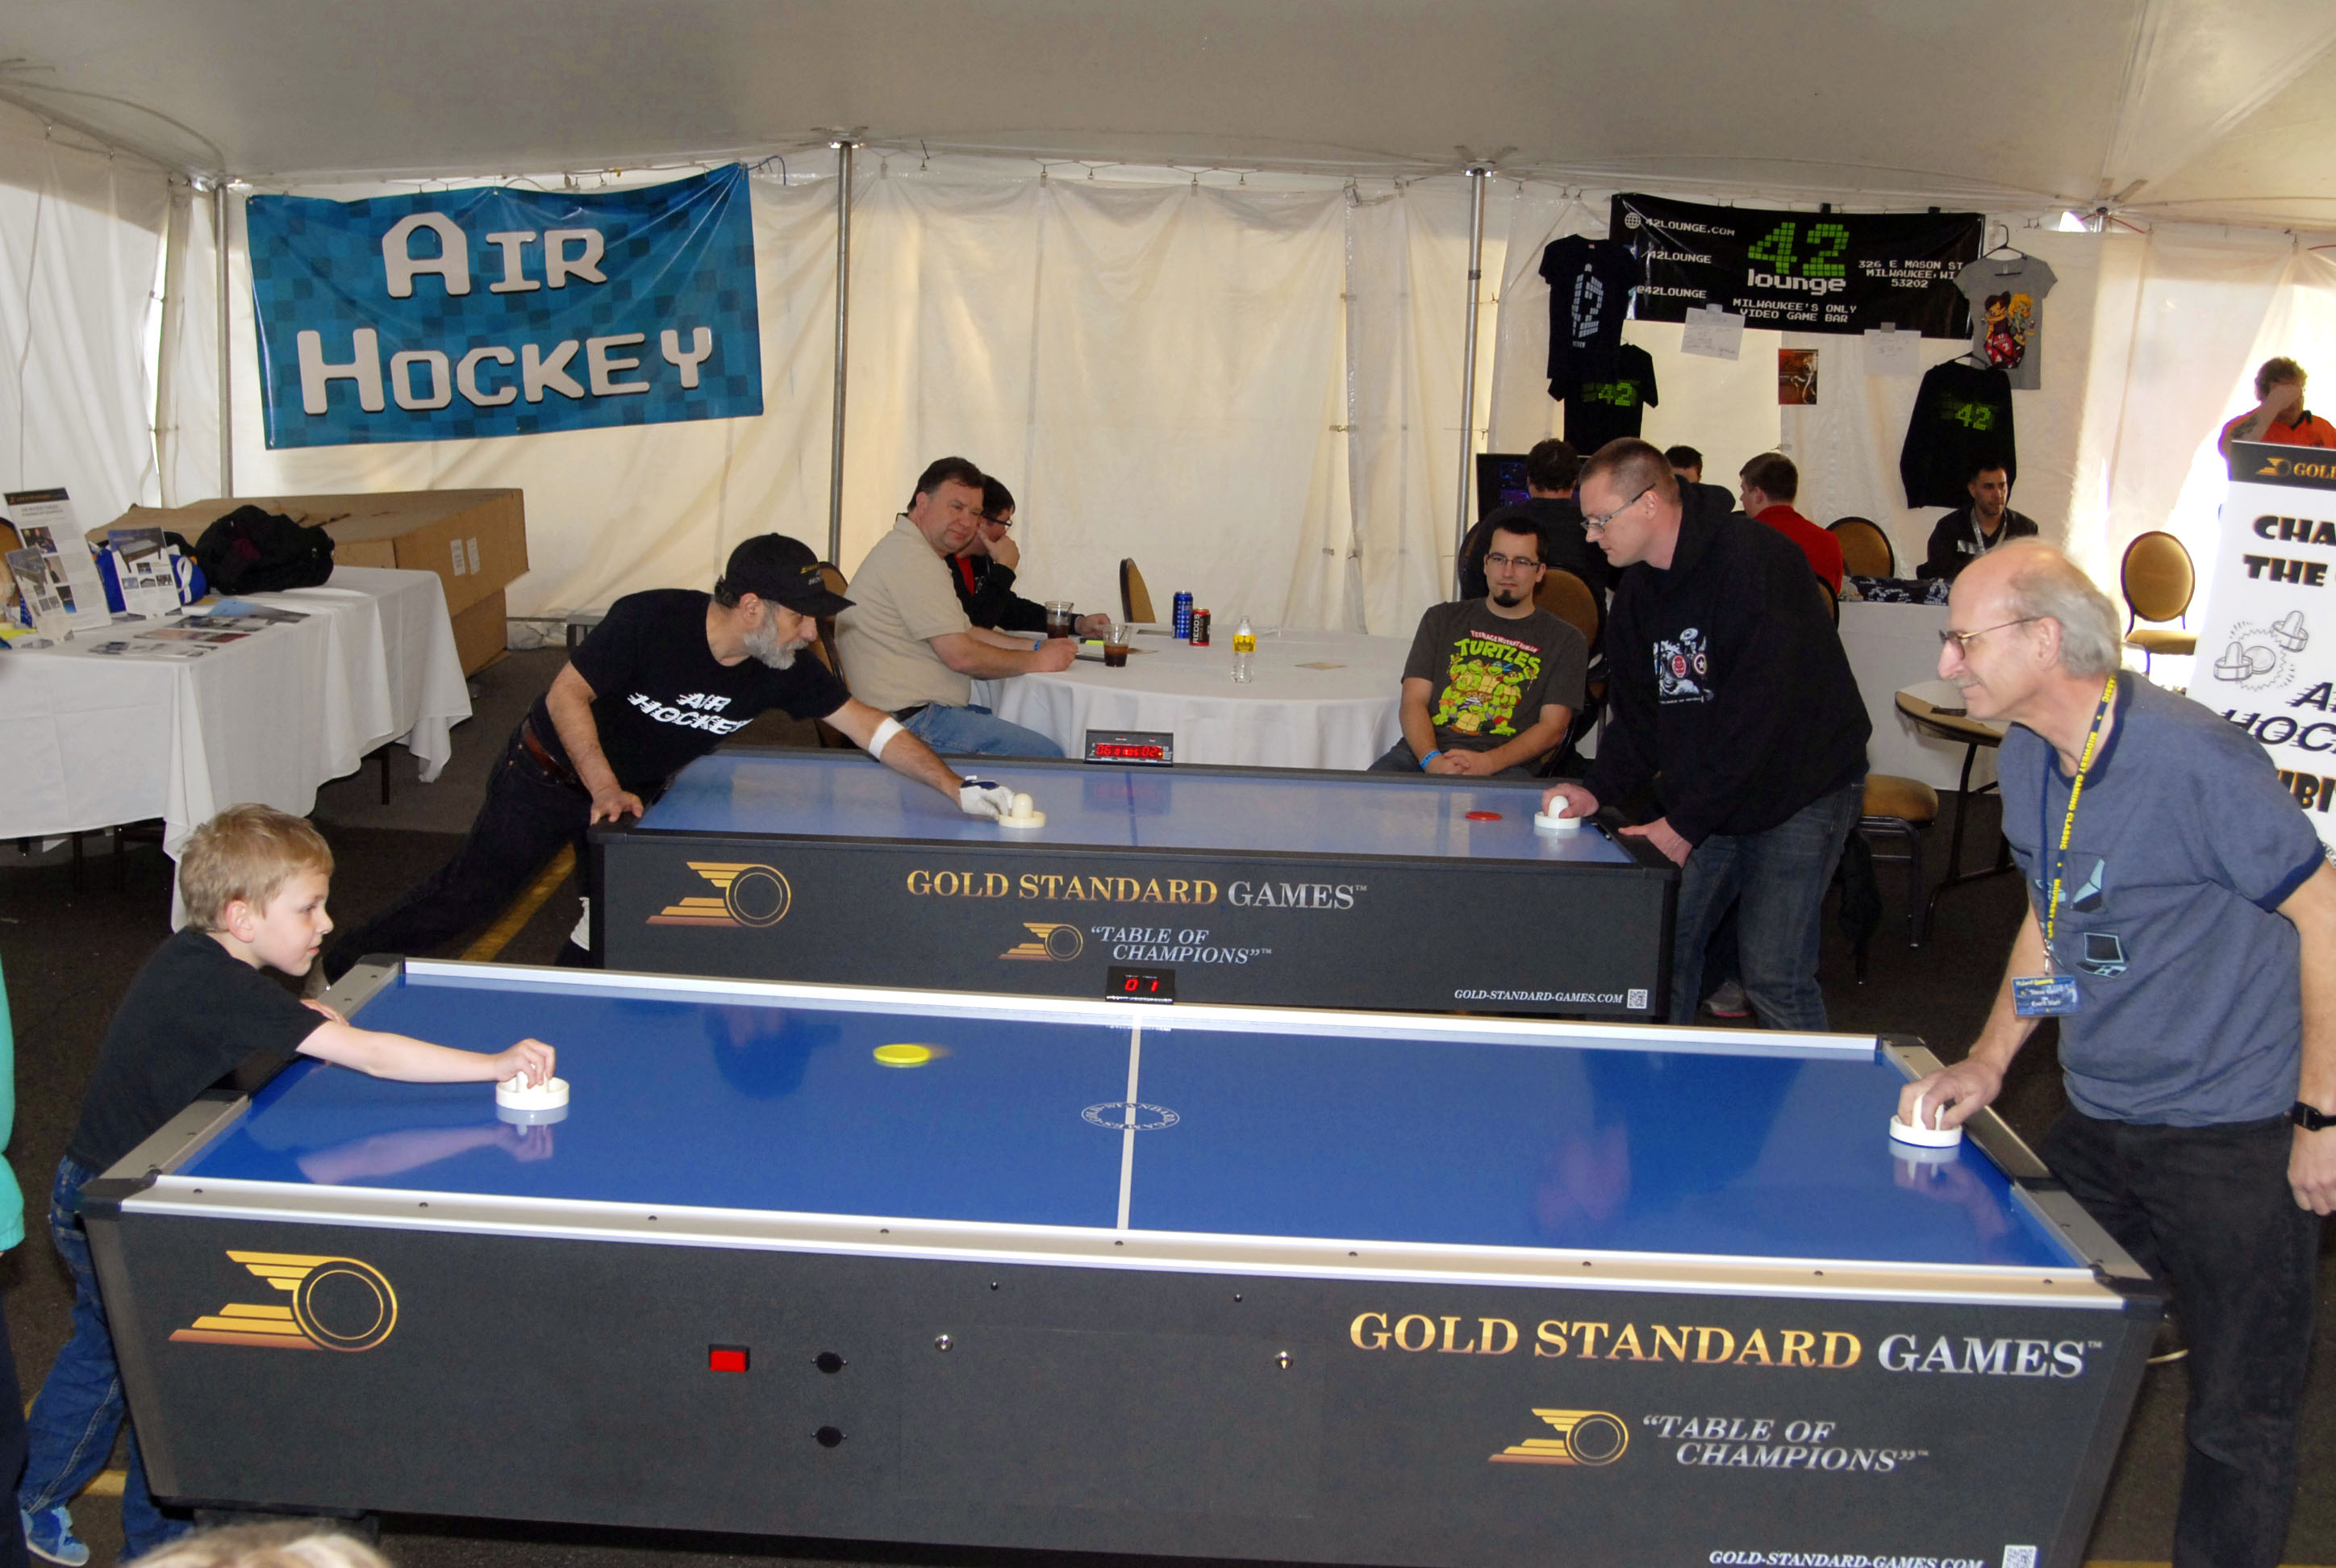 The Gold Standard Of Air Hockey